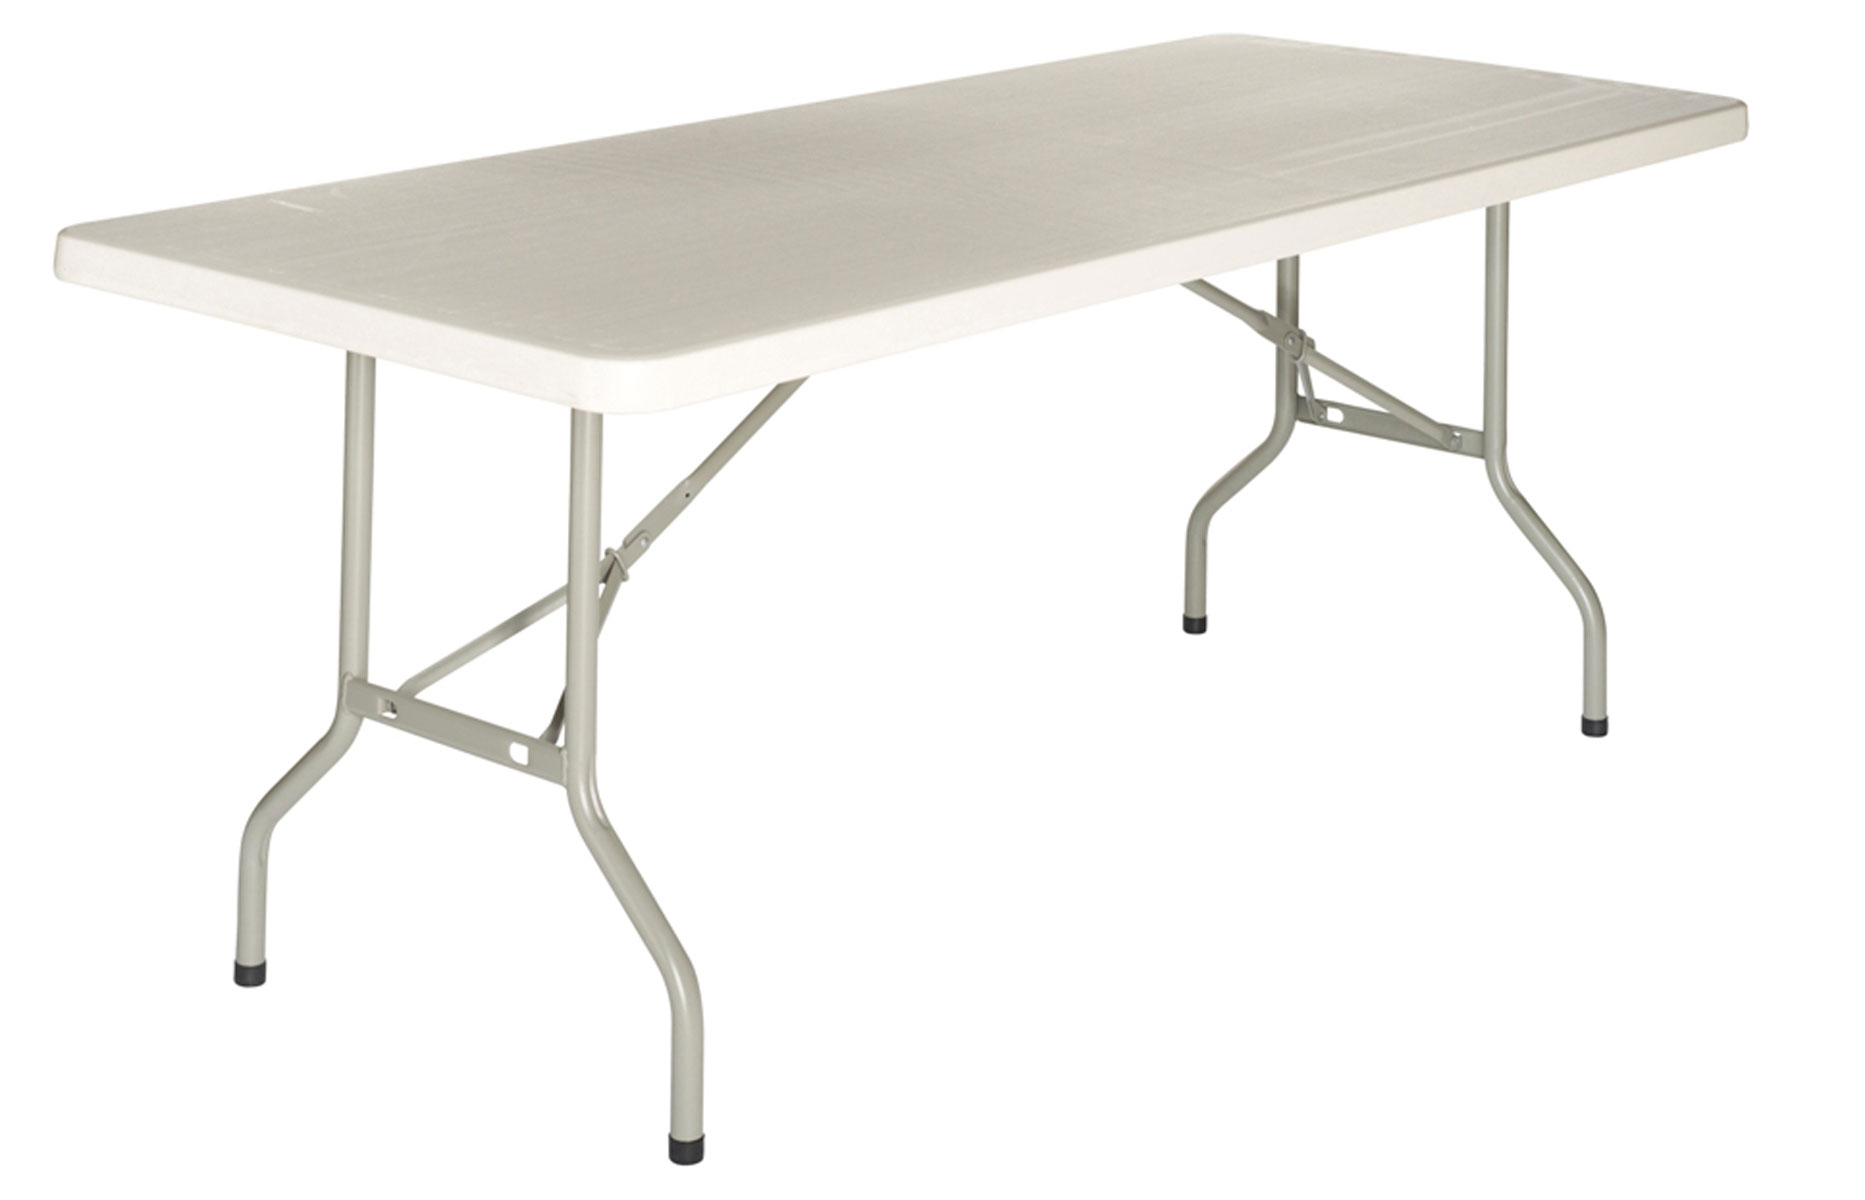 Table pliante en plastique tulle table pliante en for Leroy merlin sedie e tavoli